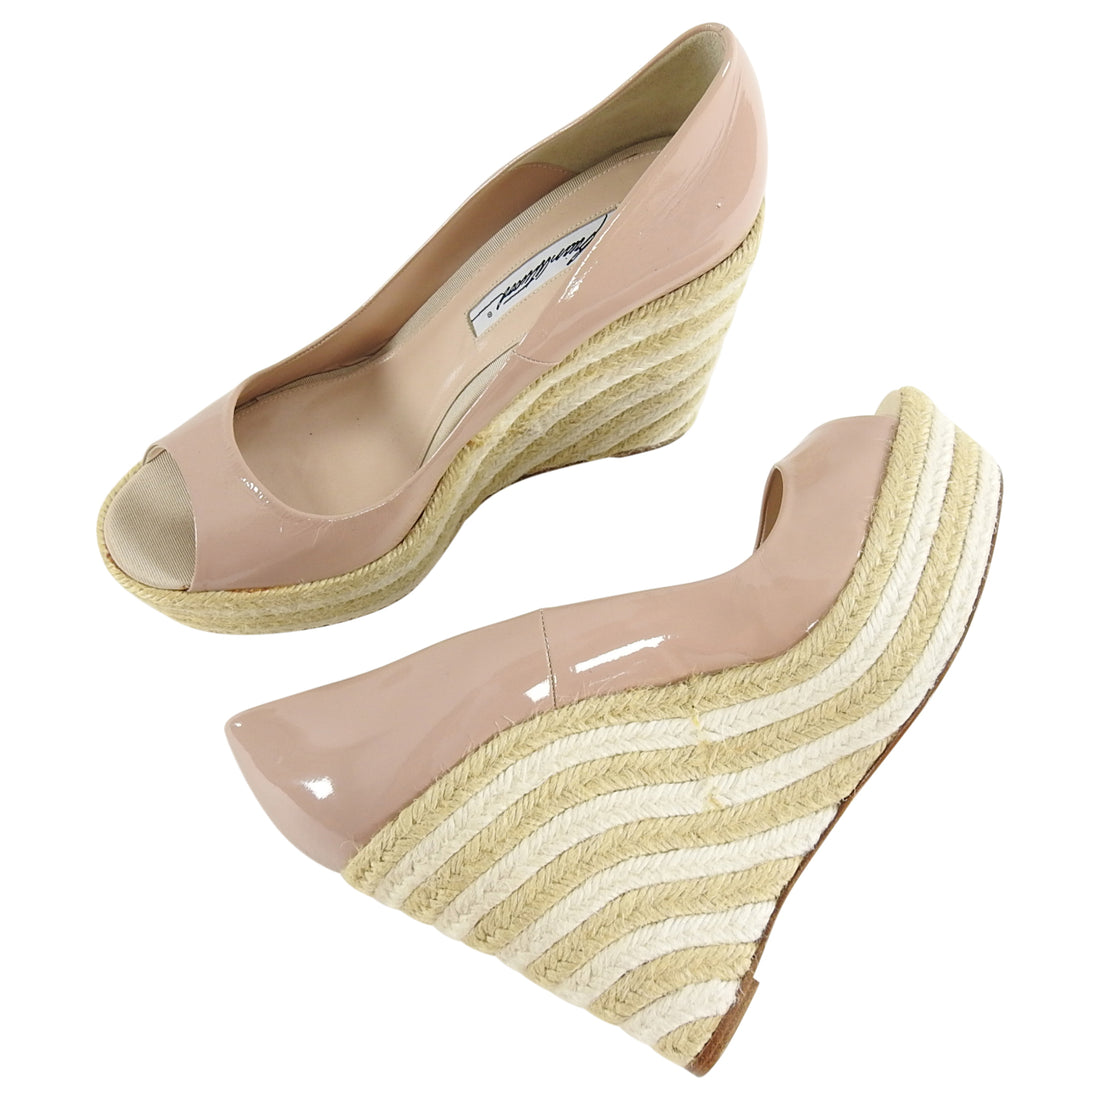 Brian Atwood Nude Patent Peep Toe Espadrille Wedge Shoes - 9.5